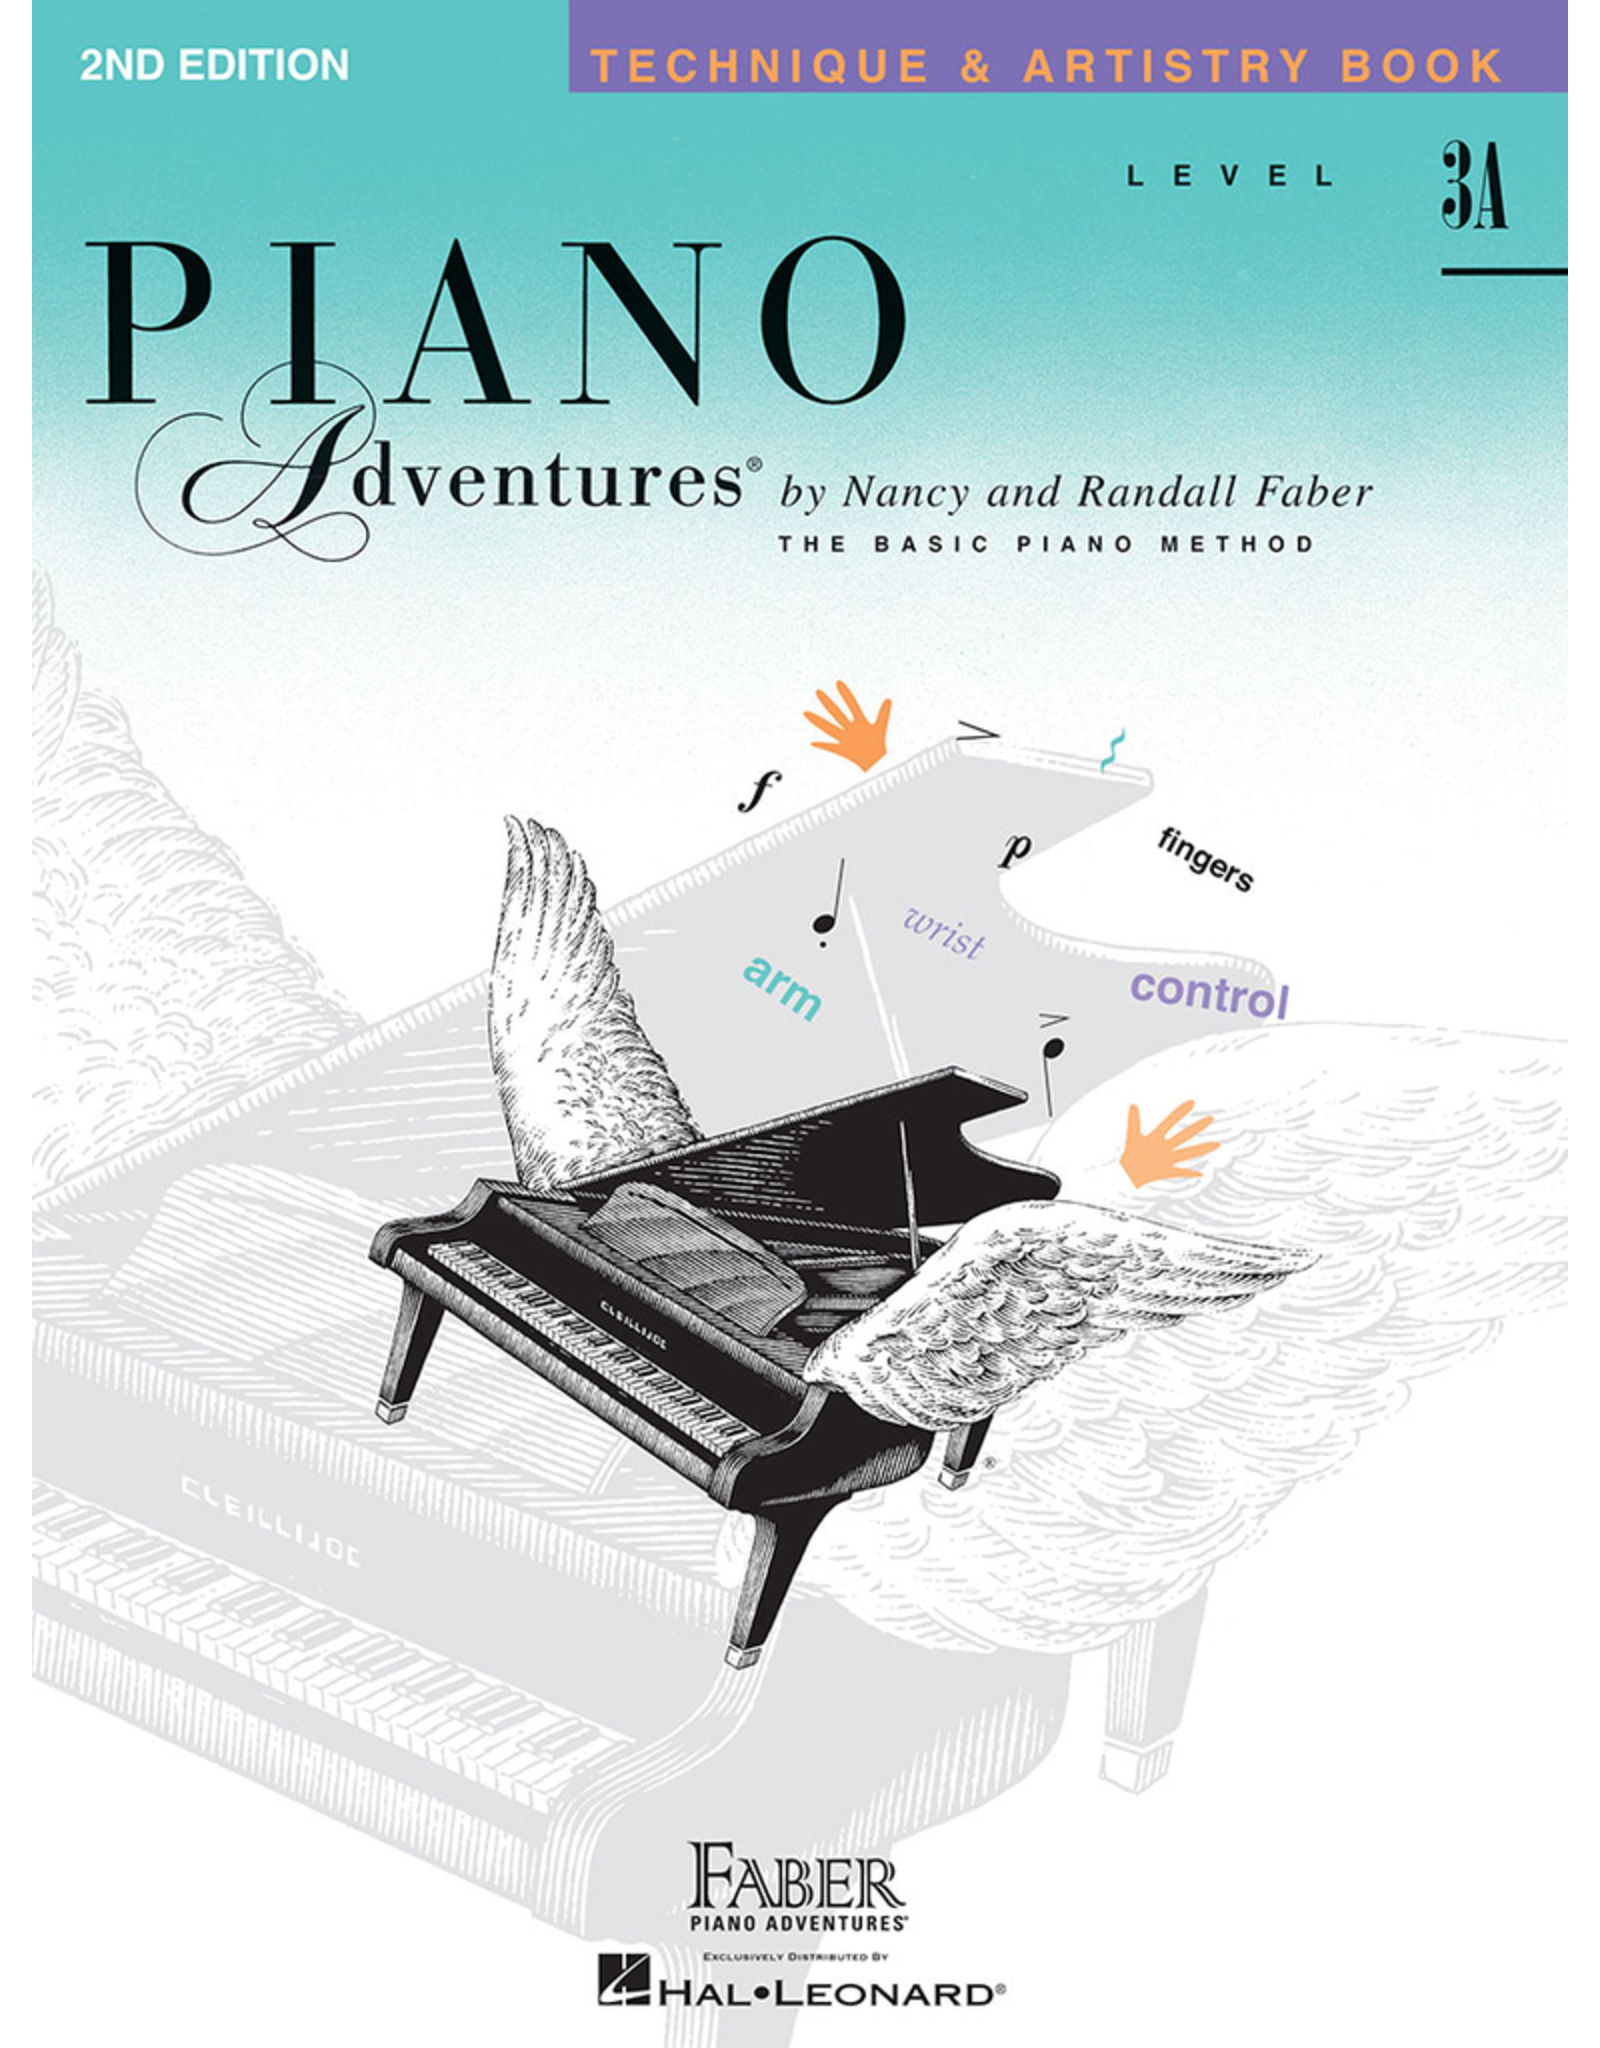 Hal Leonard Piano Adventures Technique and Artistry Level 3A